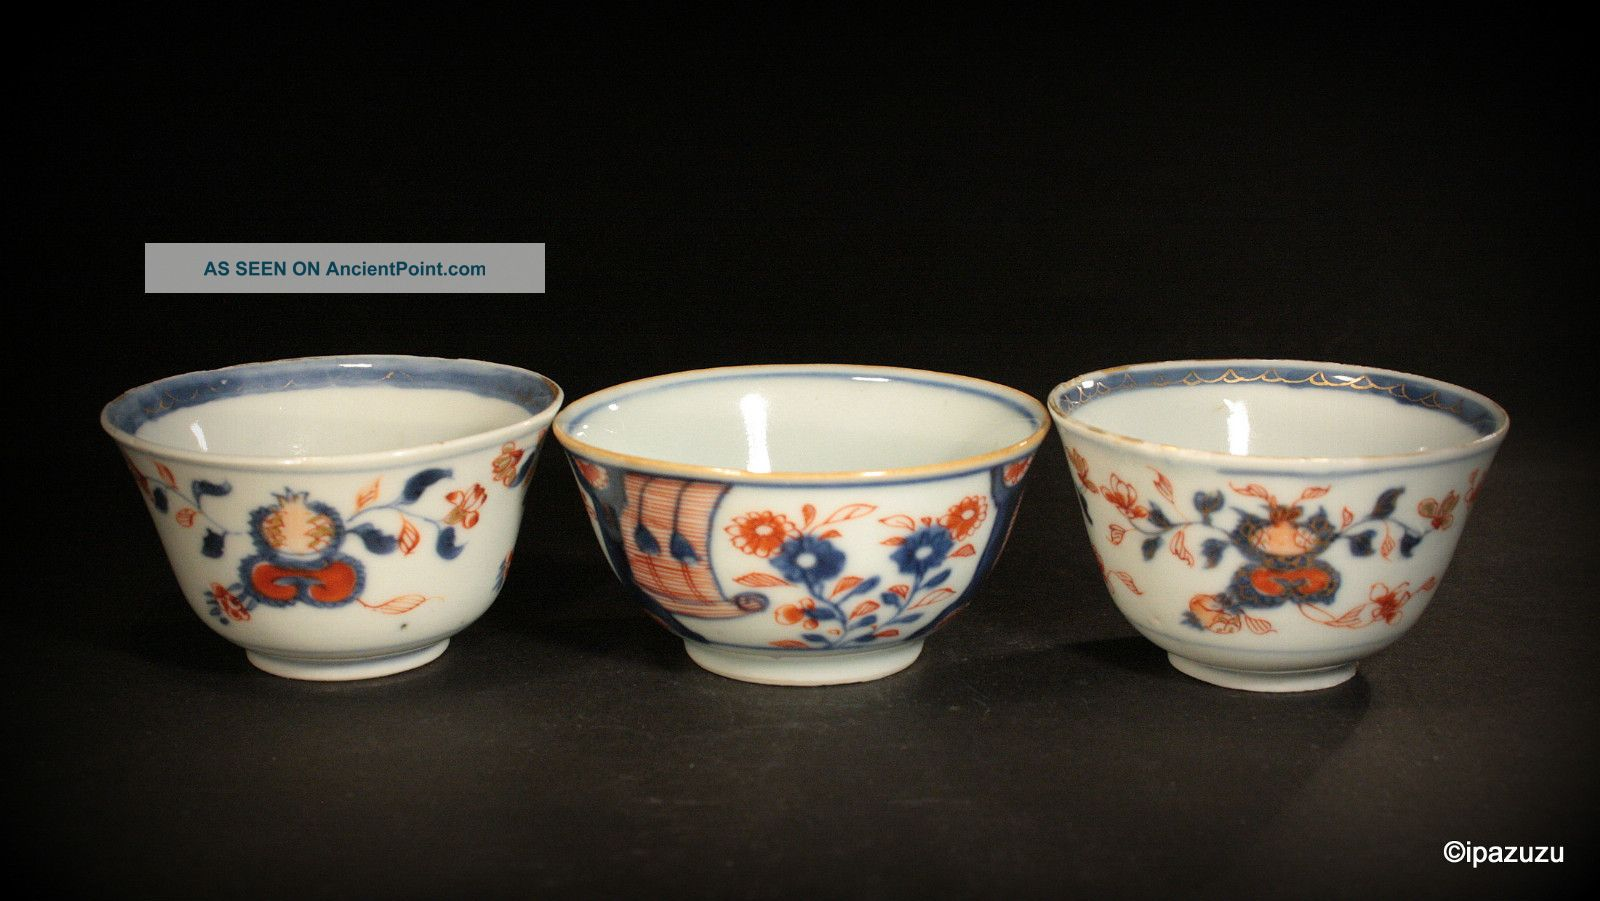 Antique Chinese Imari Tea Bowls Three Piece Lot Circa 1750 Bowls photo